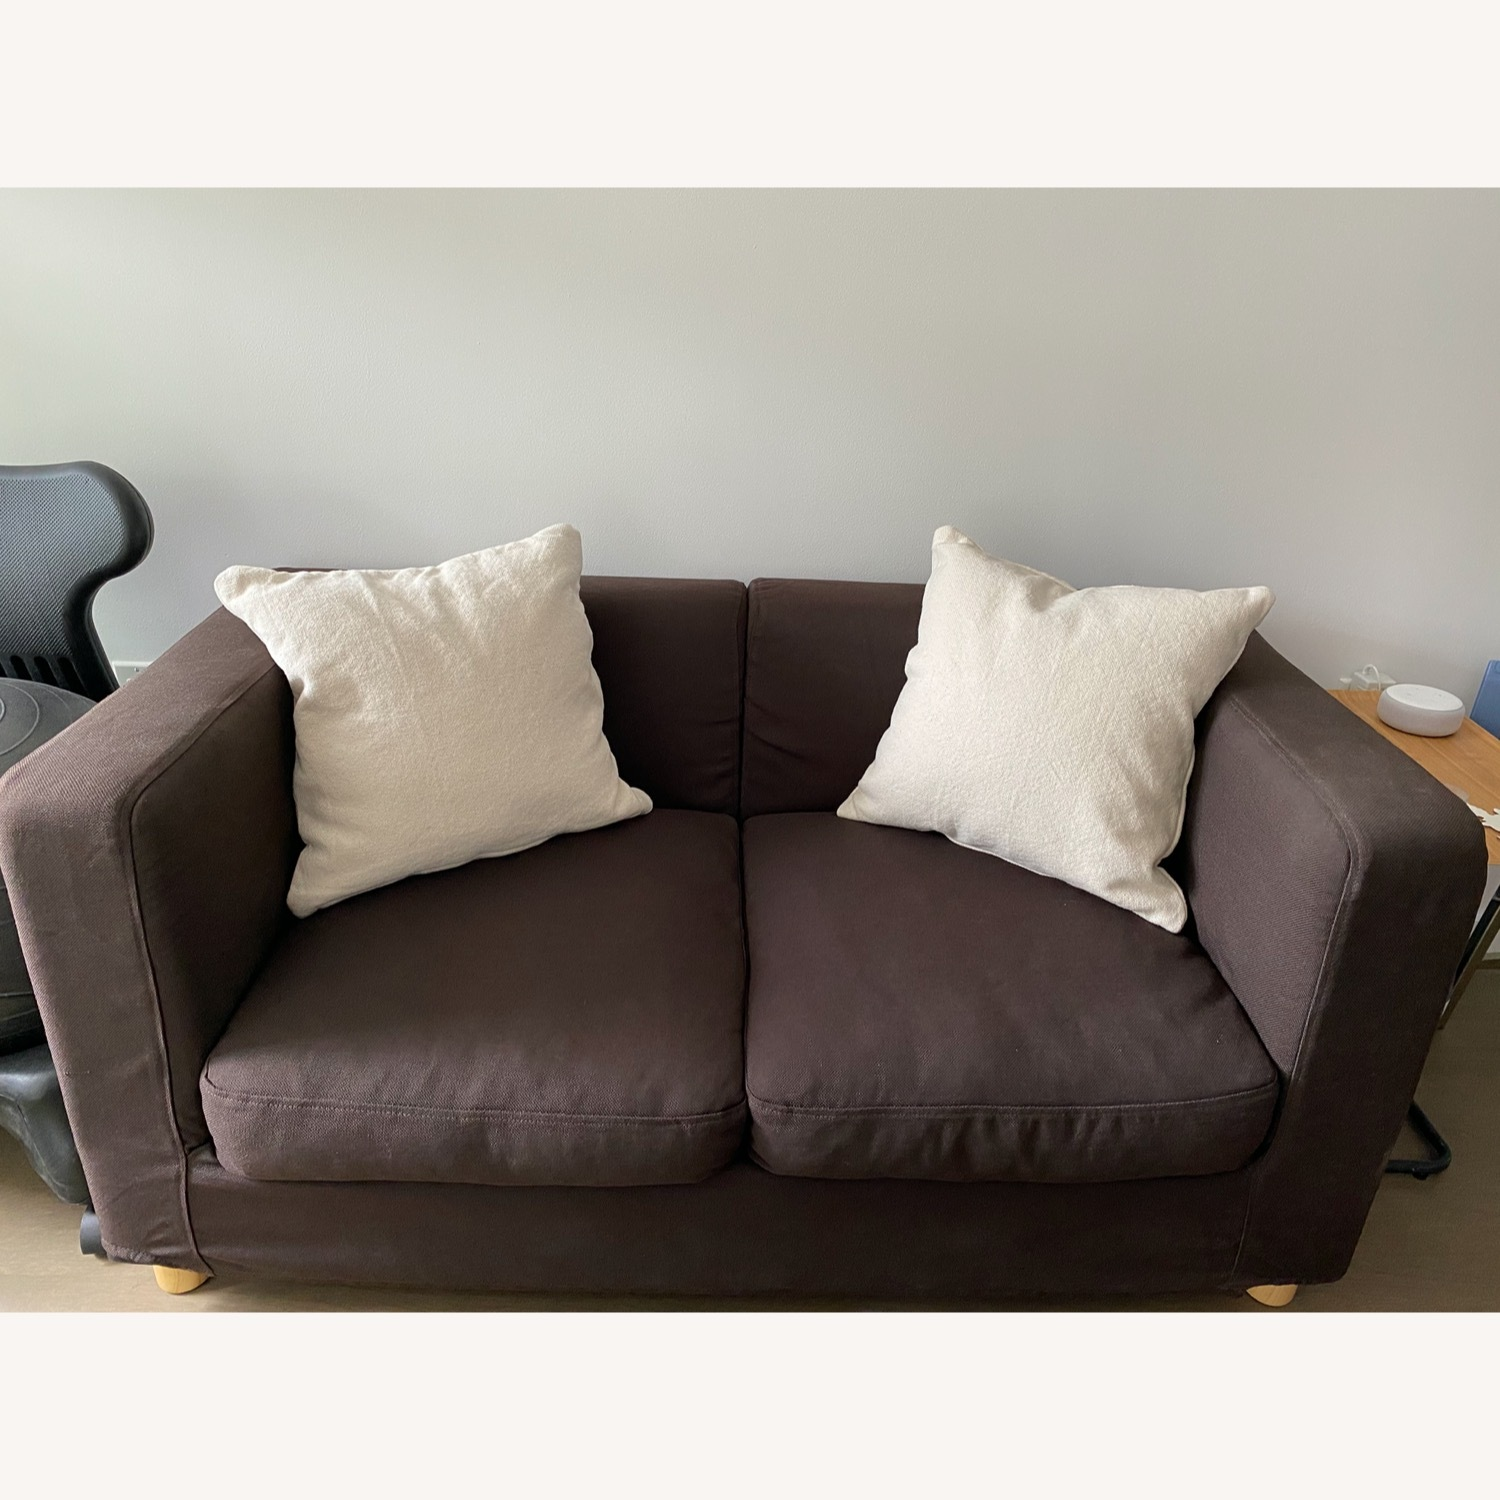 Muji 2-seater Box Sofa - image-4